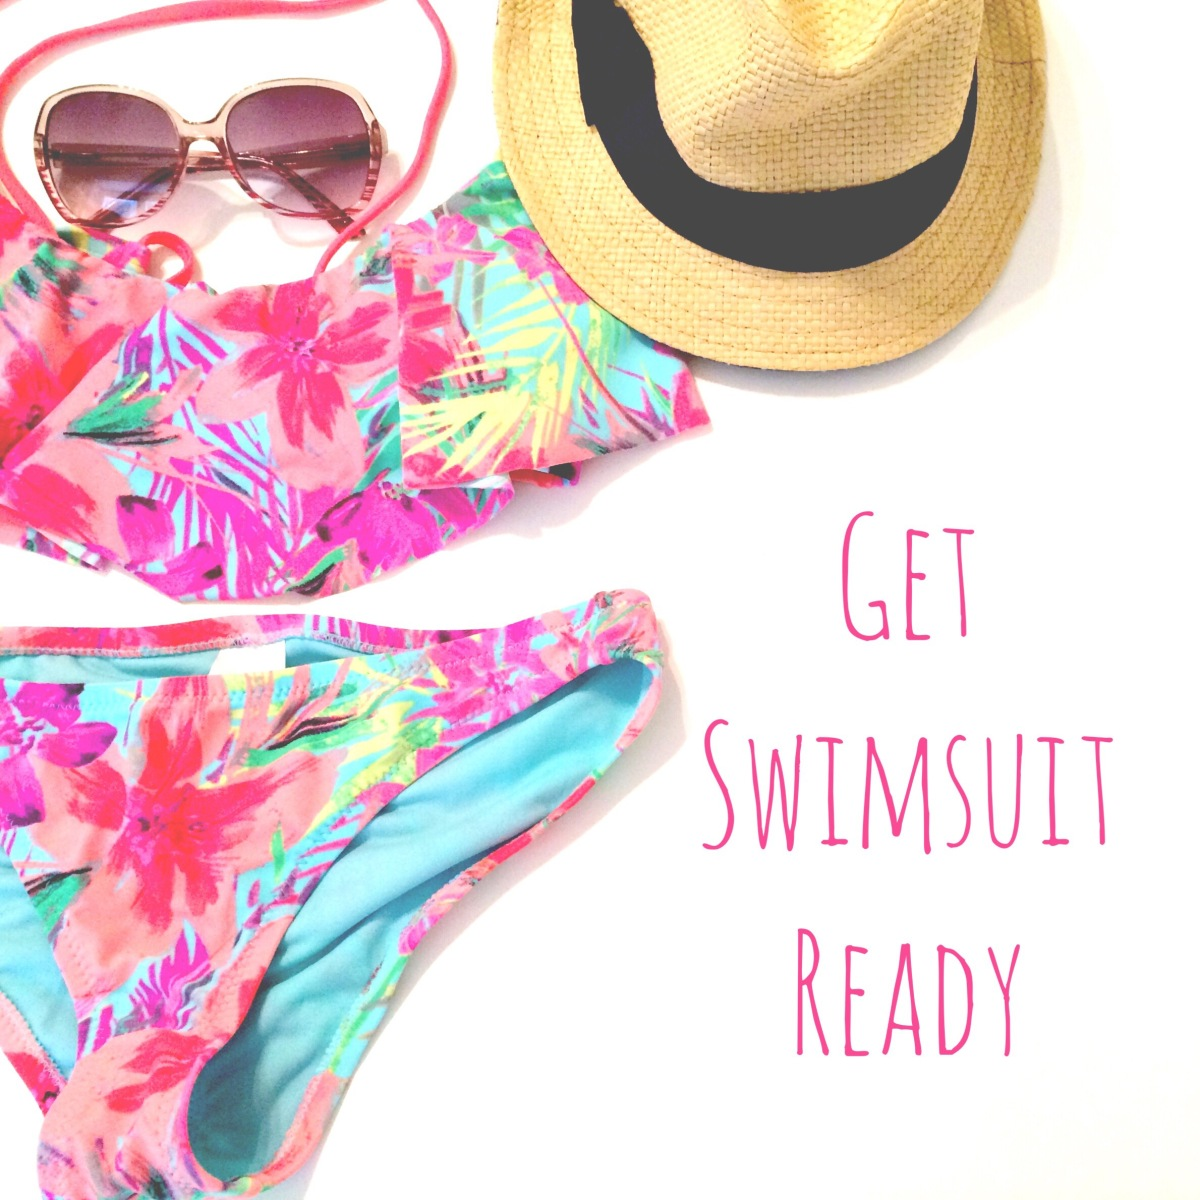 How To Get SwimsuitReady